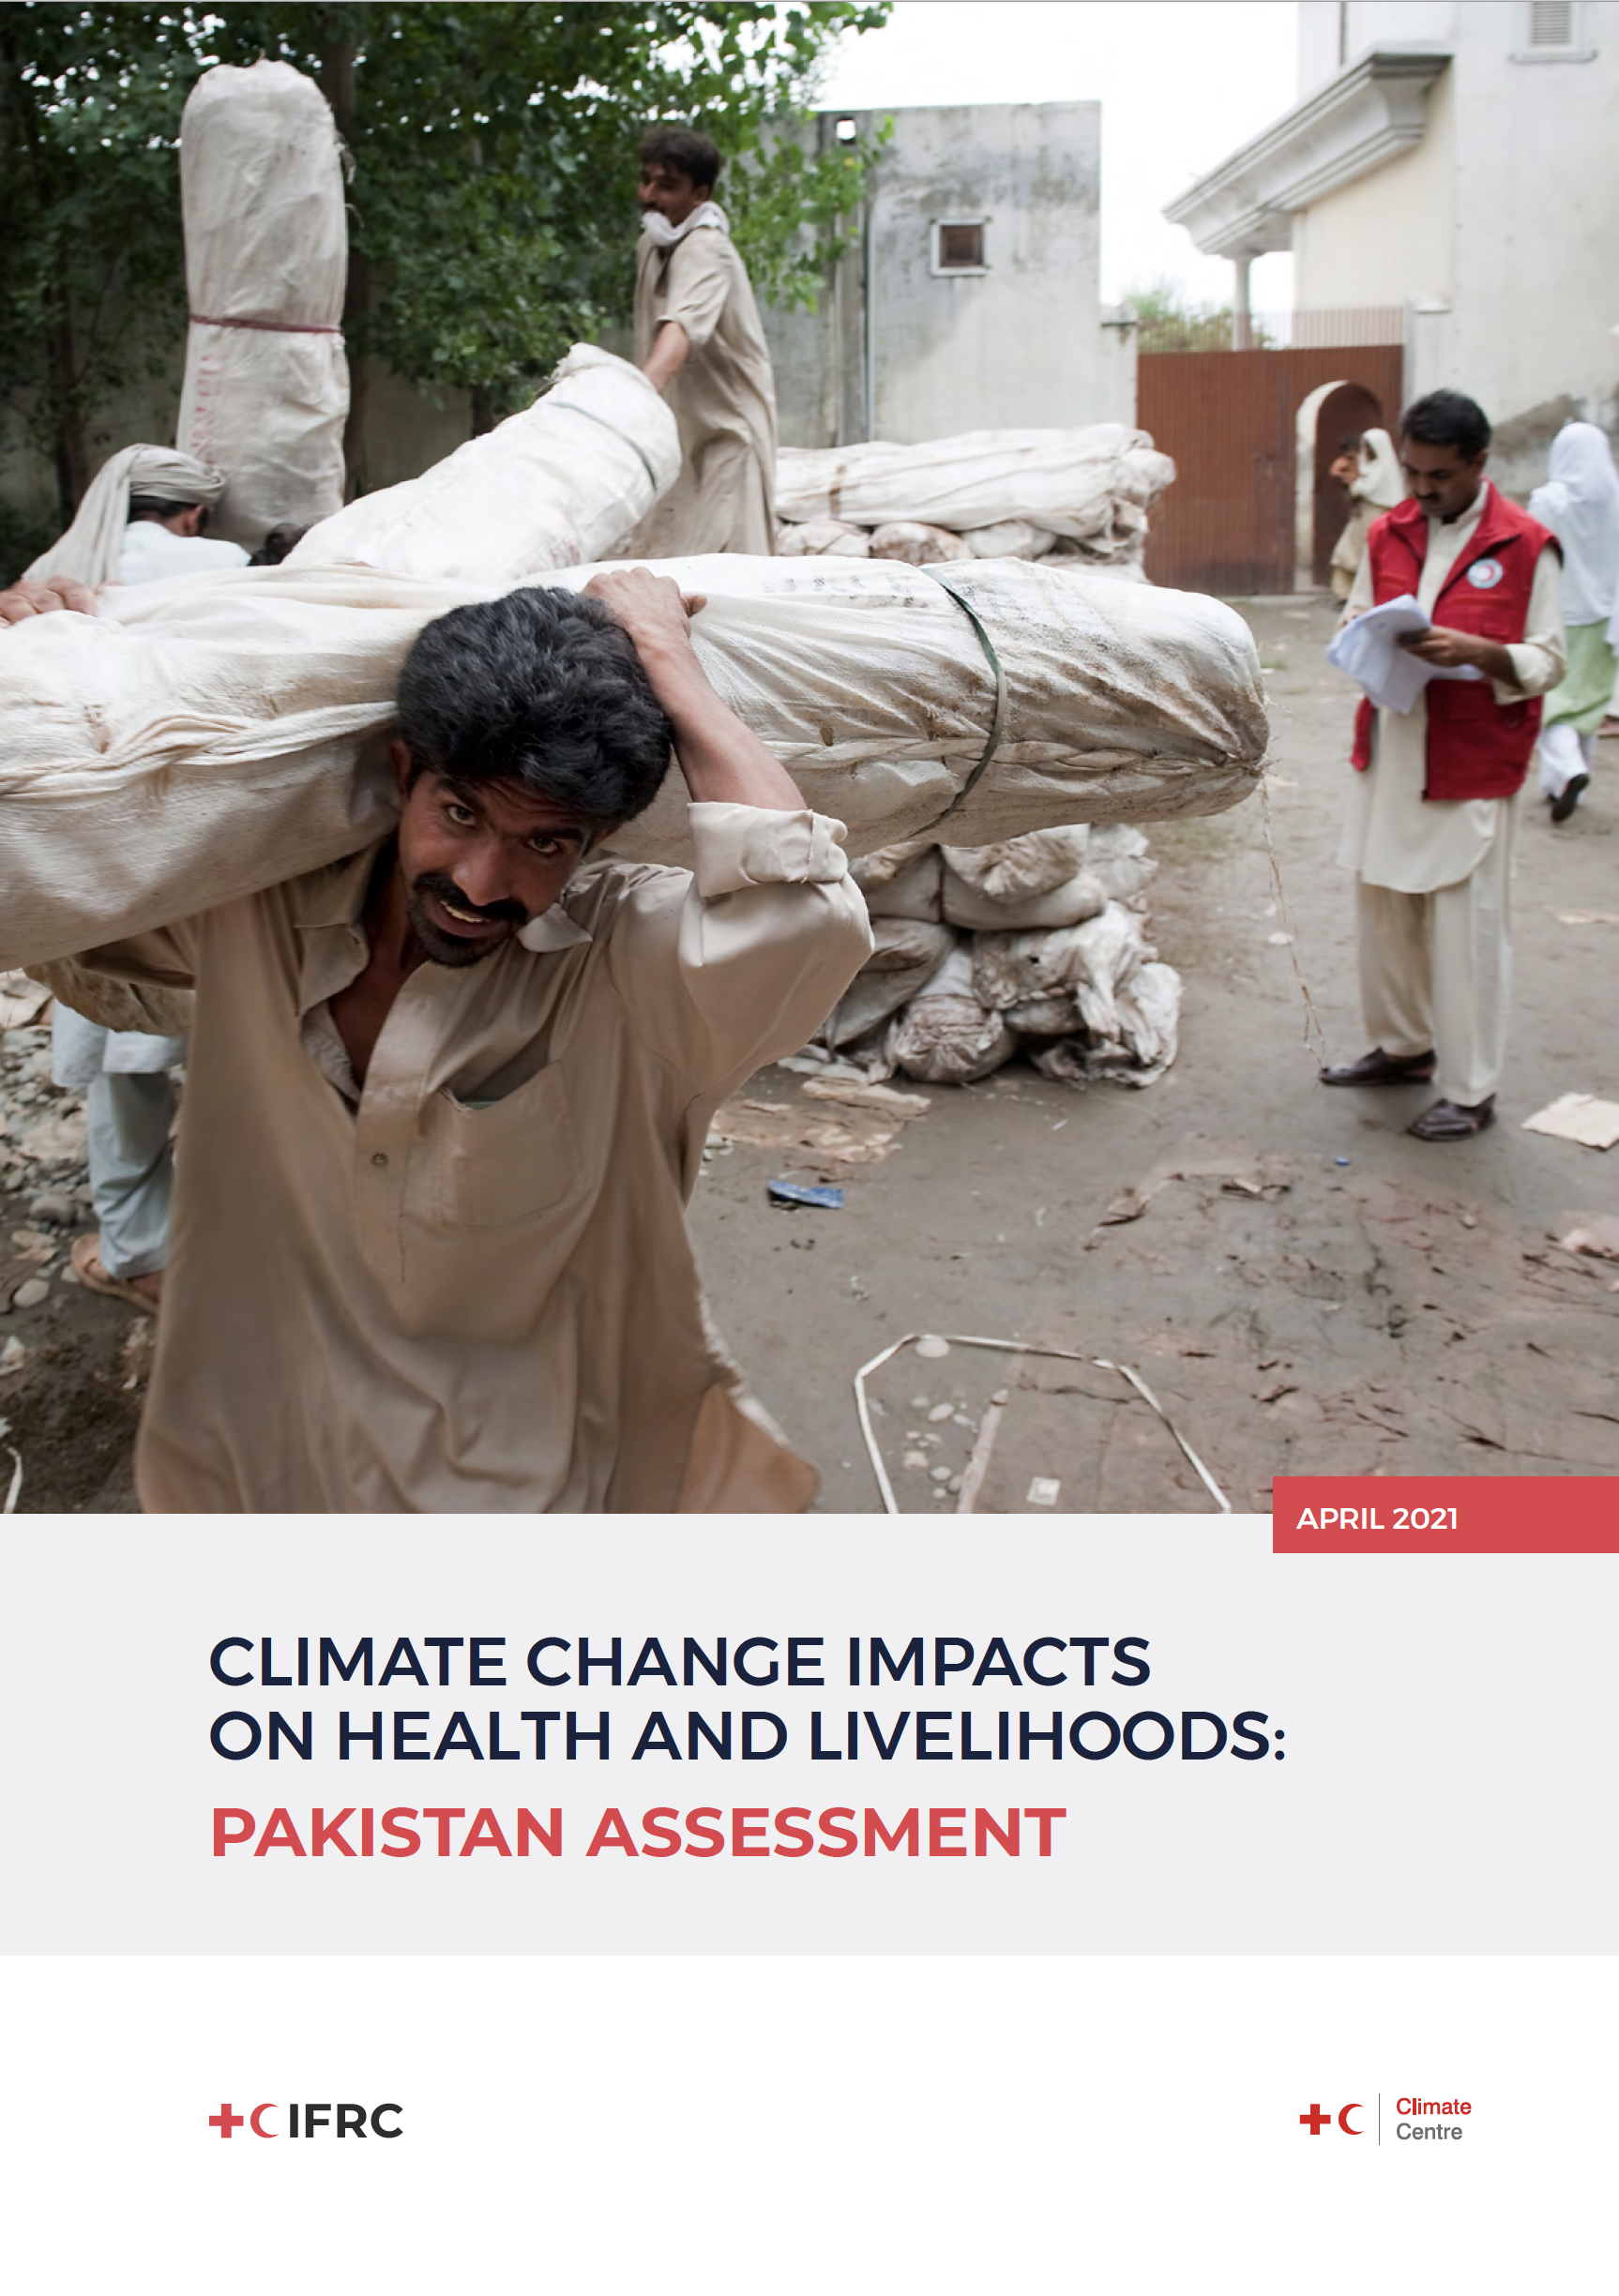 Climate Change Impacts on Health and Livelihoods: Pakistan Assessment